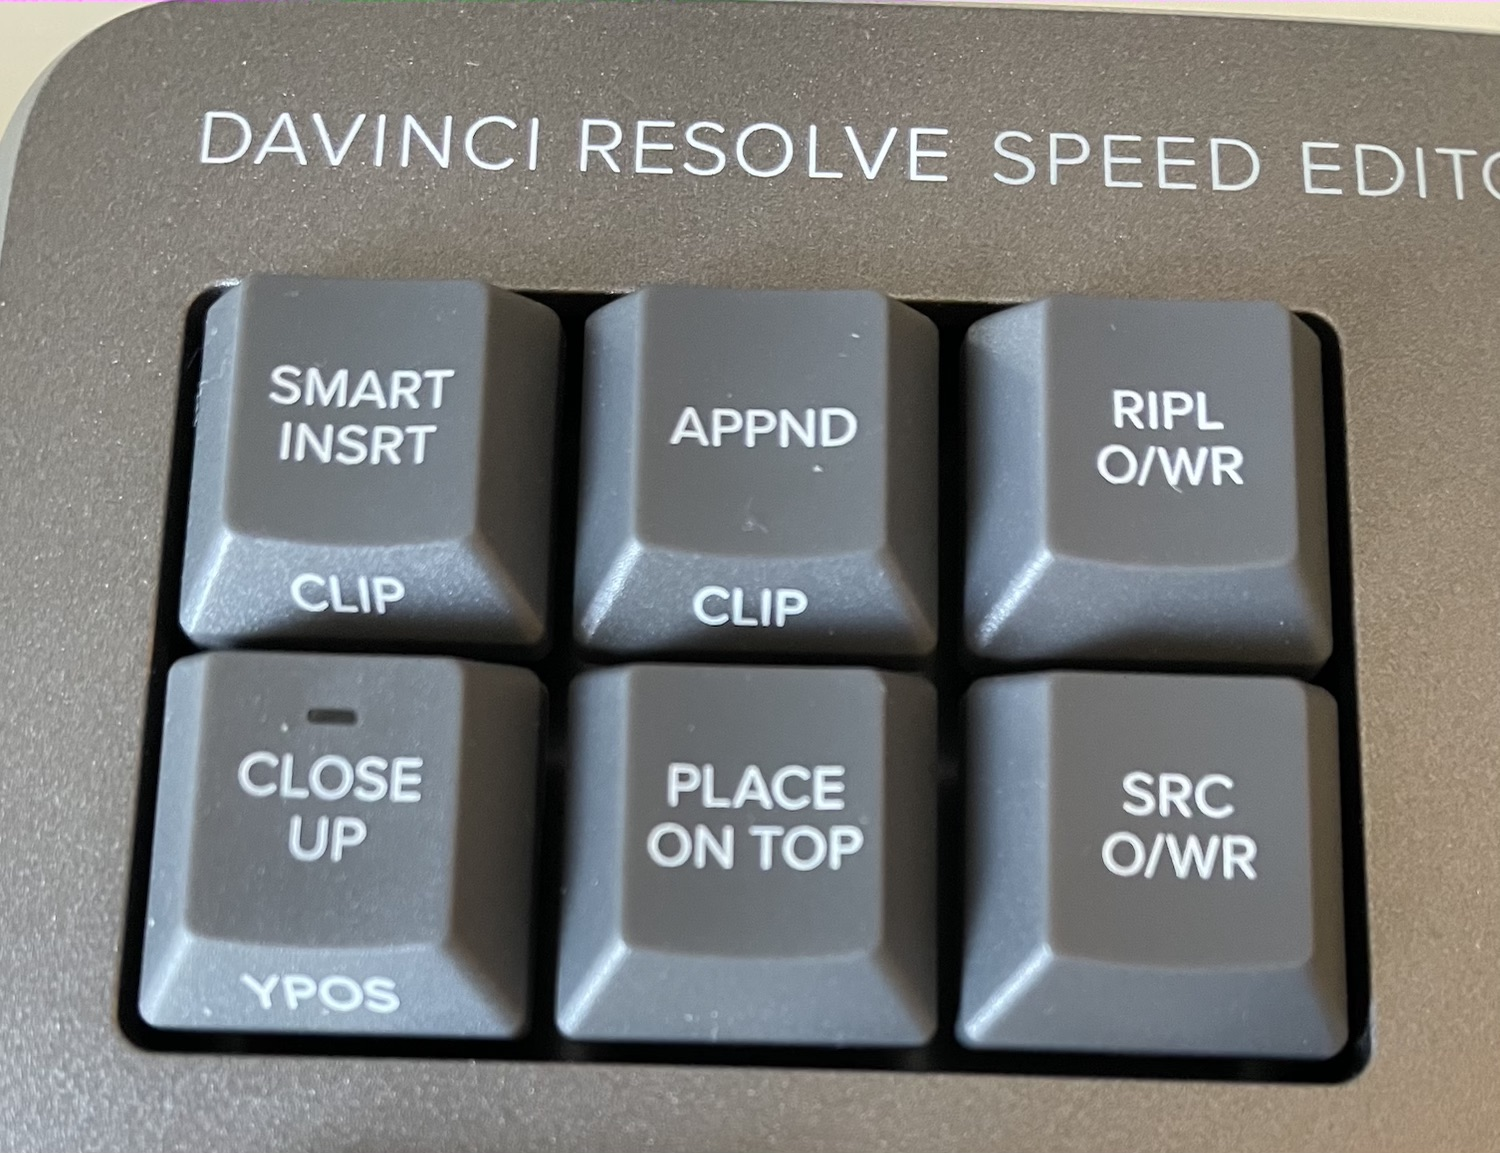 DaVinci Resolve Speed Editor edit buttons